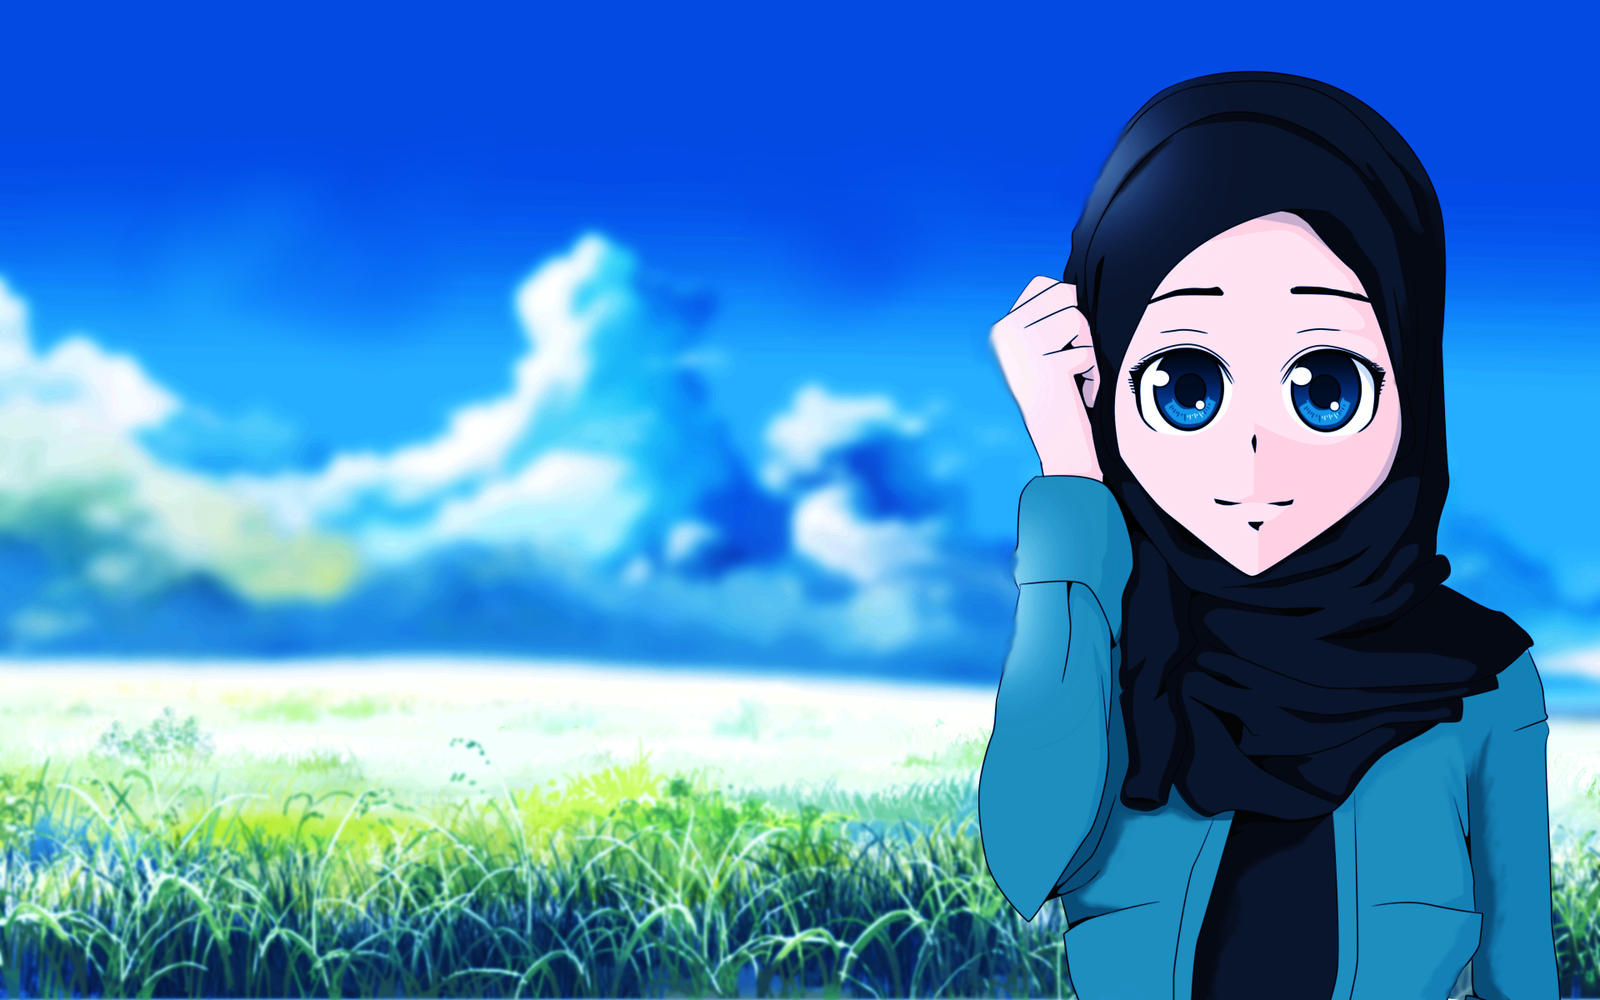 wallpaper hijab wallpapers south - photo #25